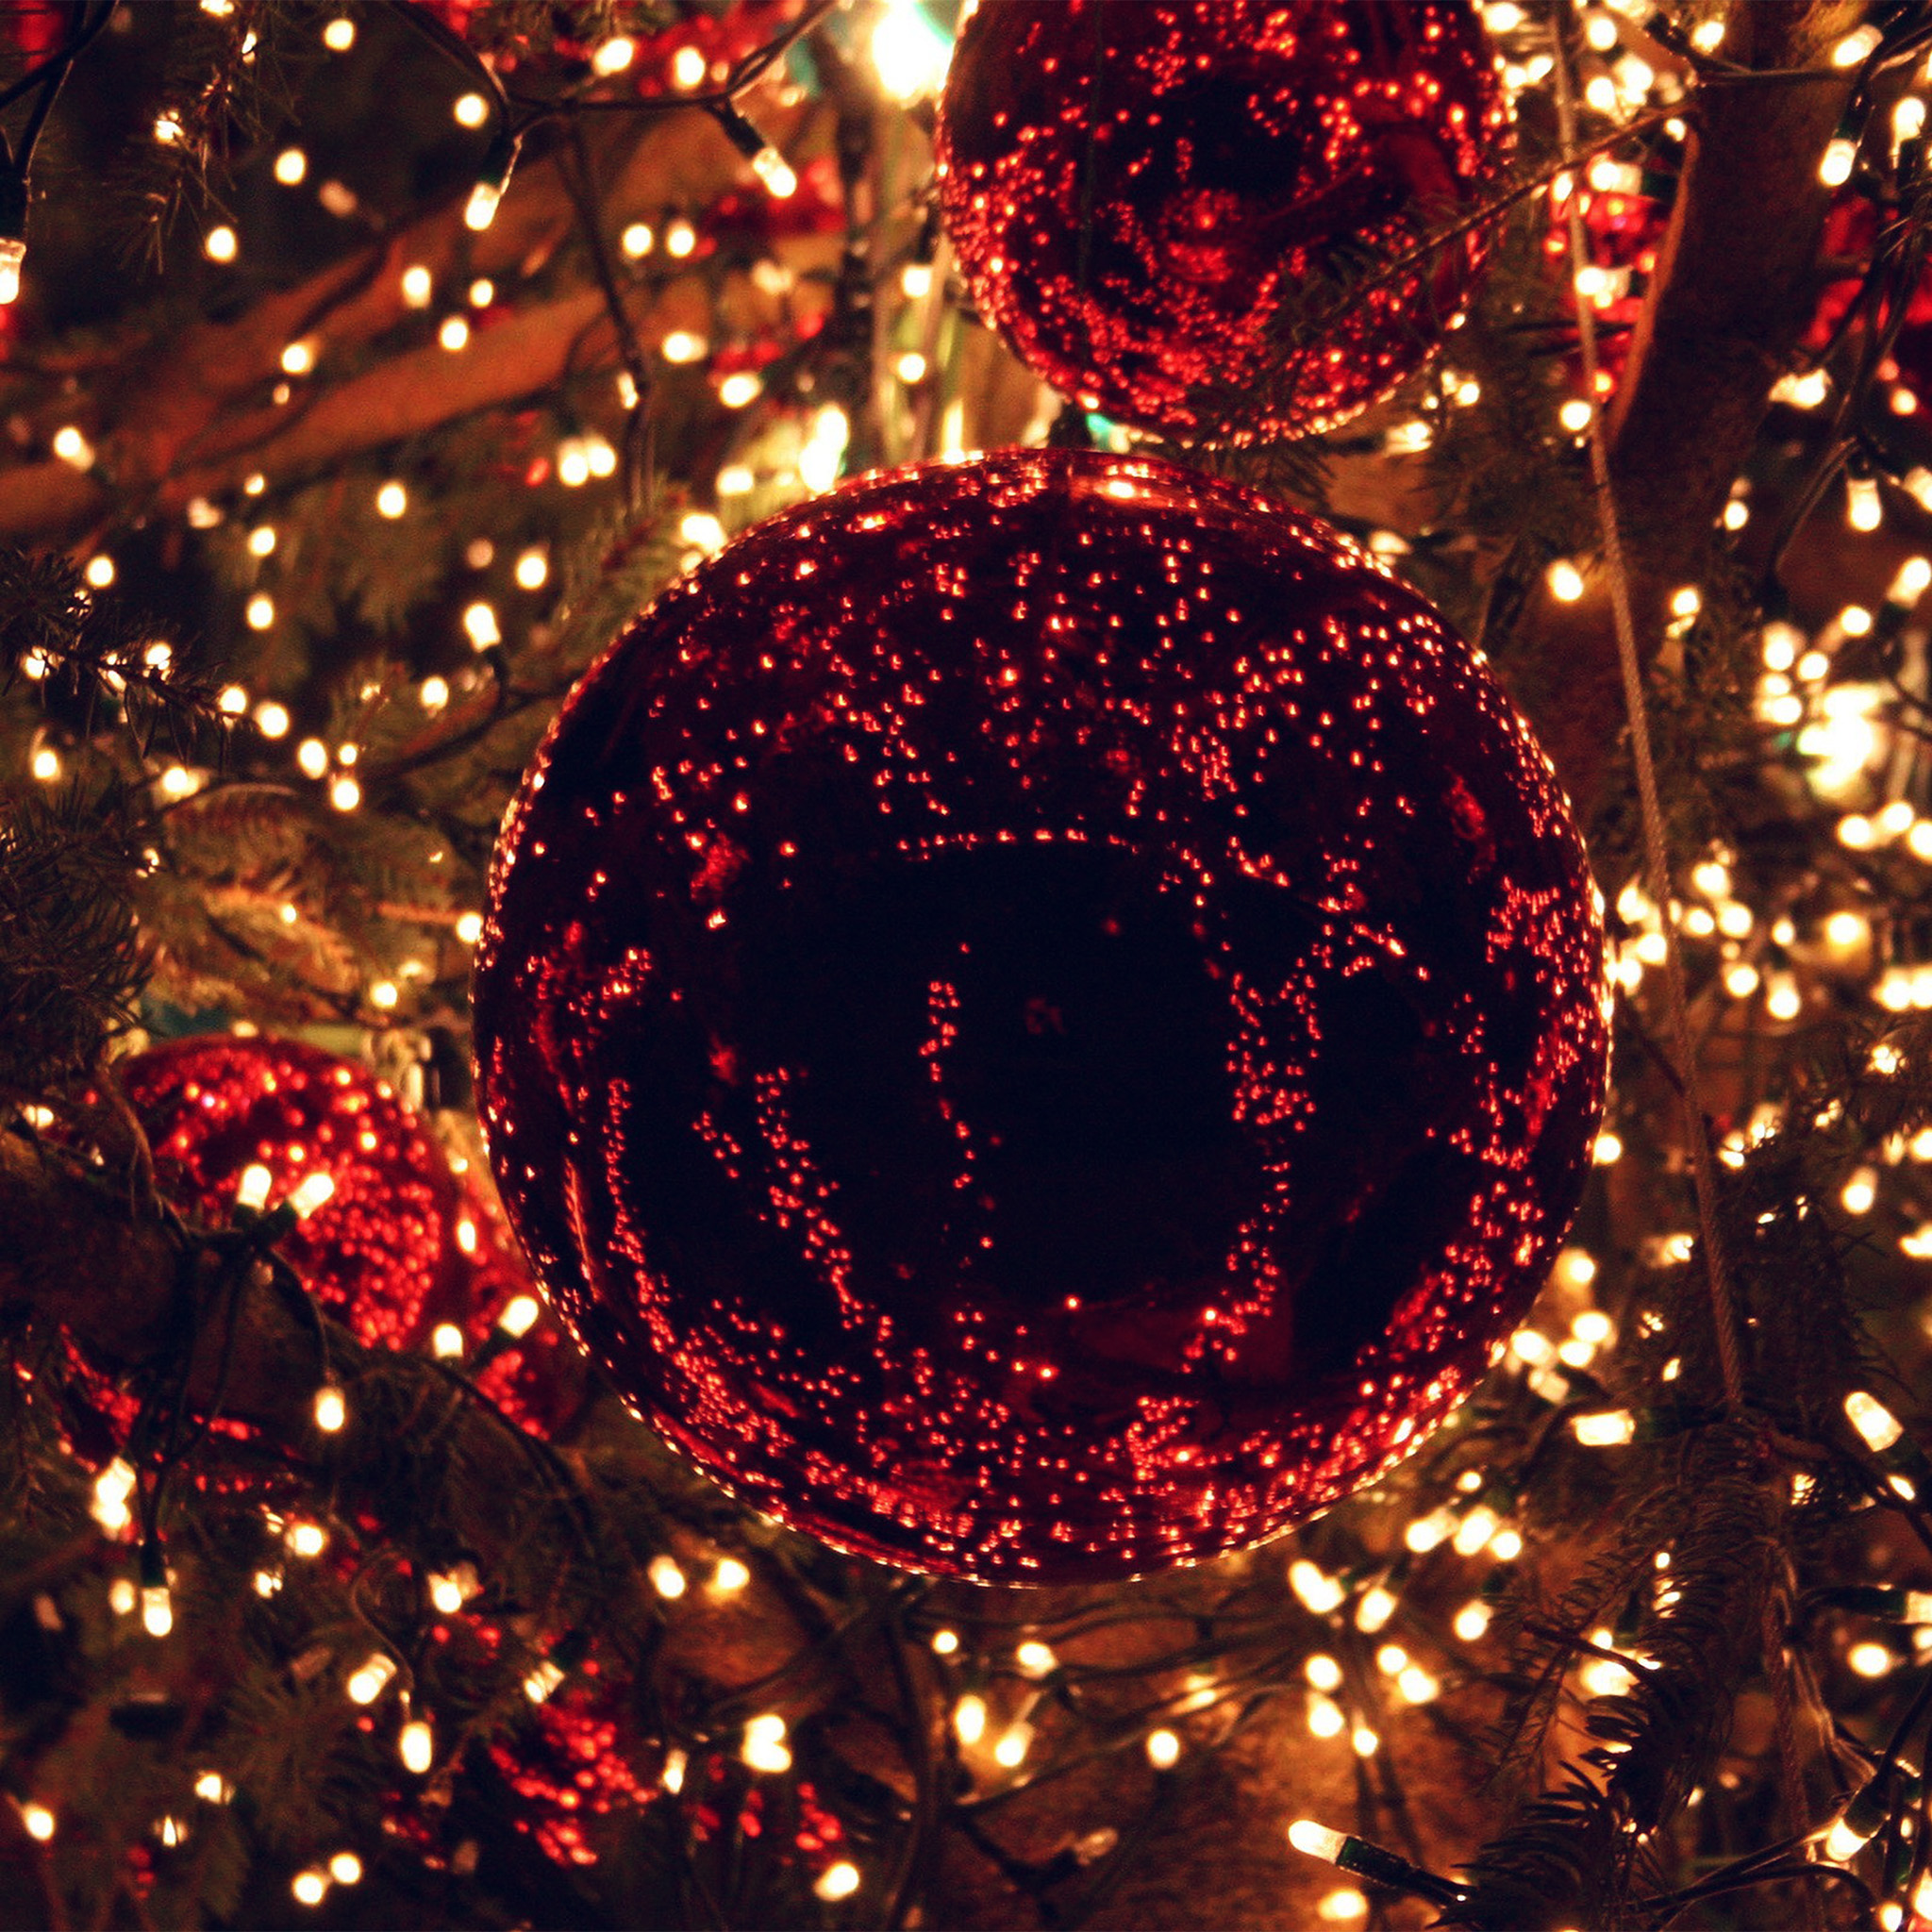 real essence of christmas essay Traditions - the true essence of christmas celebrations posted on : 14th december 2014 as is with any festival, christmas too has many traditions and customs which are being carried forward by families the world over.